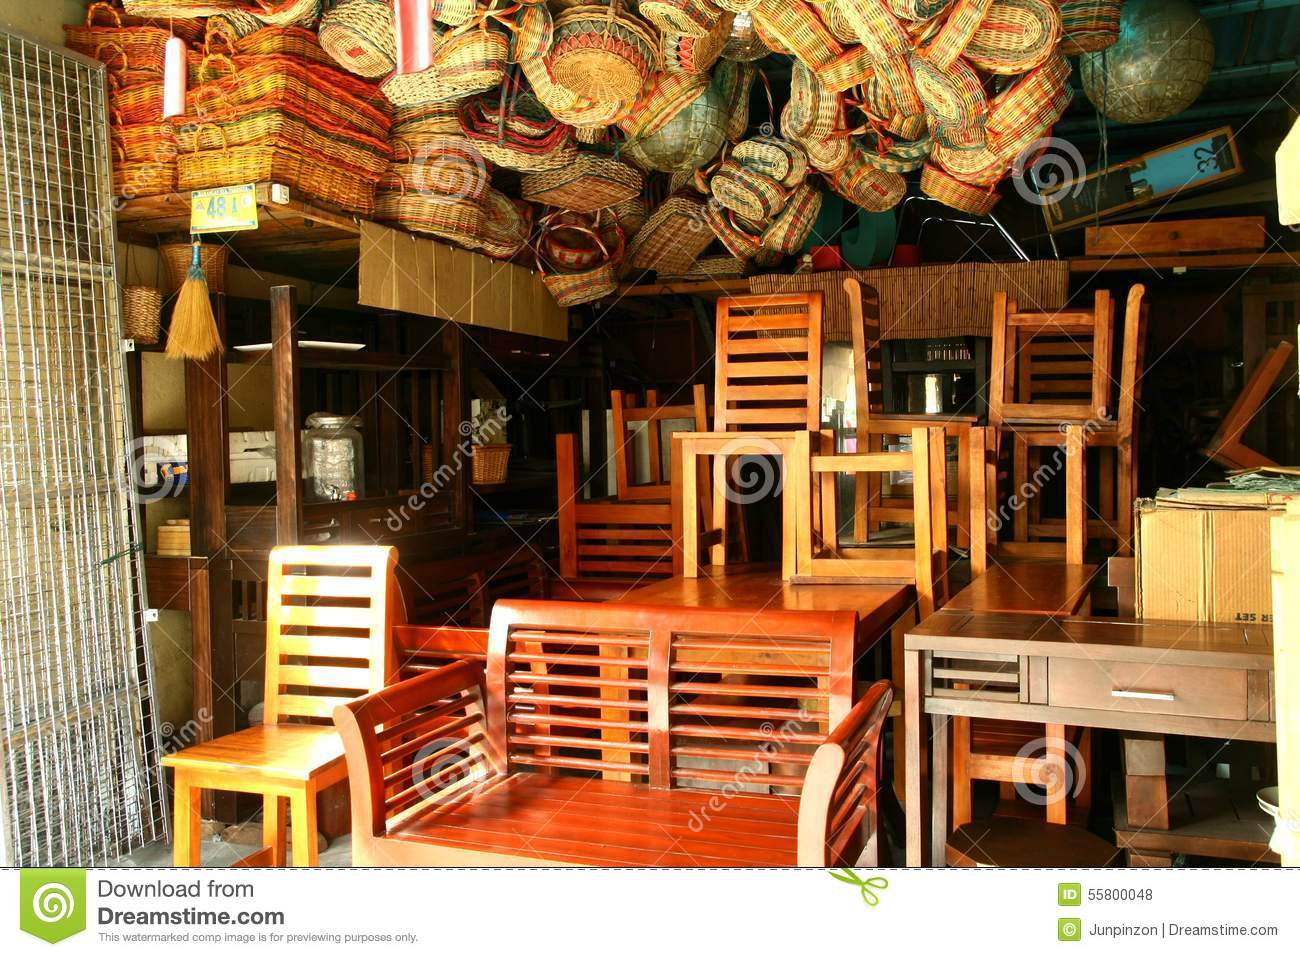 Arcade Chairs Dapitan Flea Furniture Home Manila Market Philippines Selling  Store ...